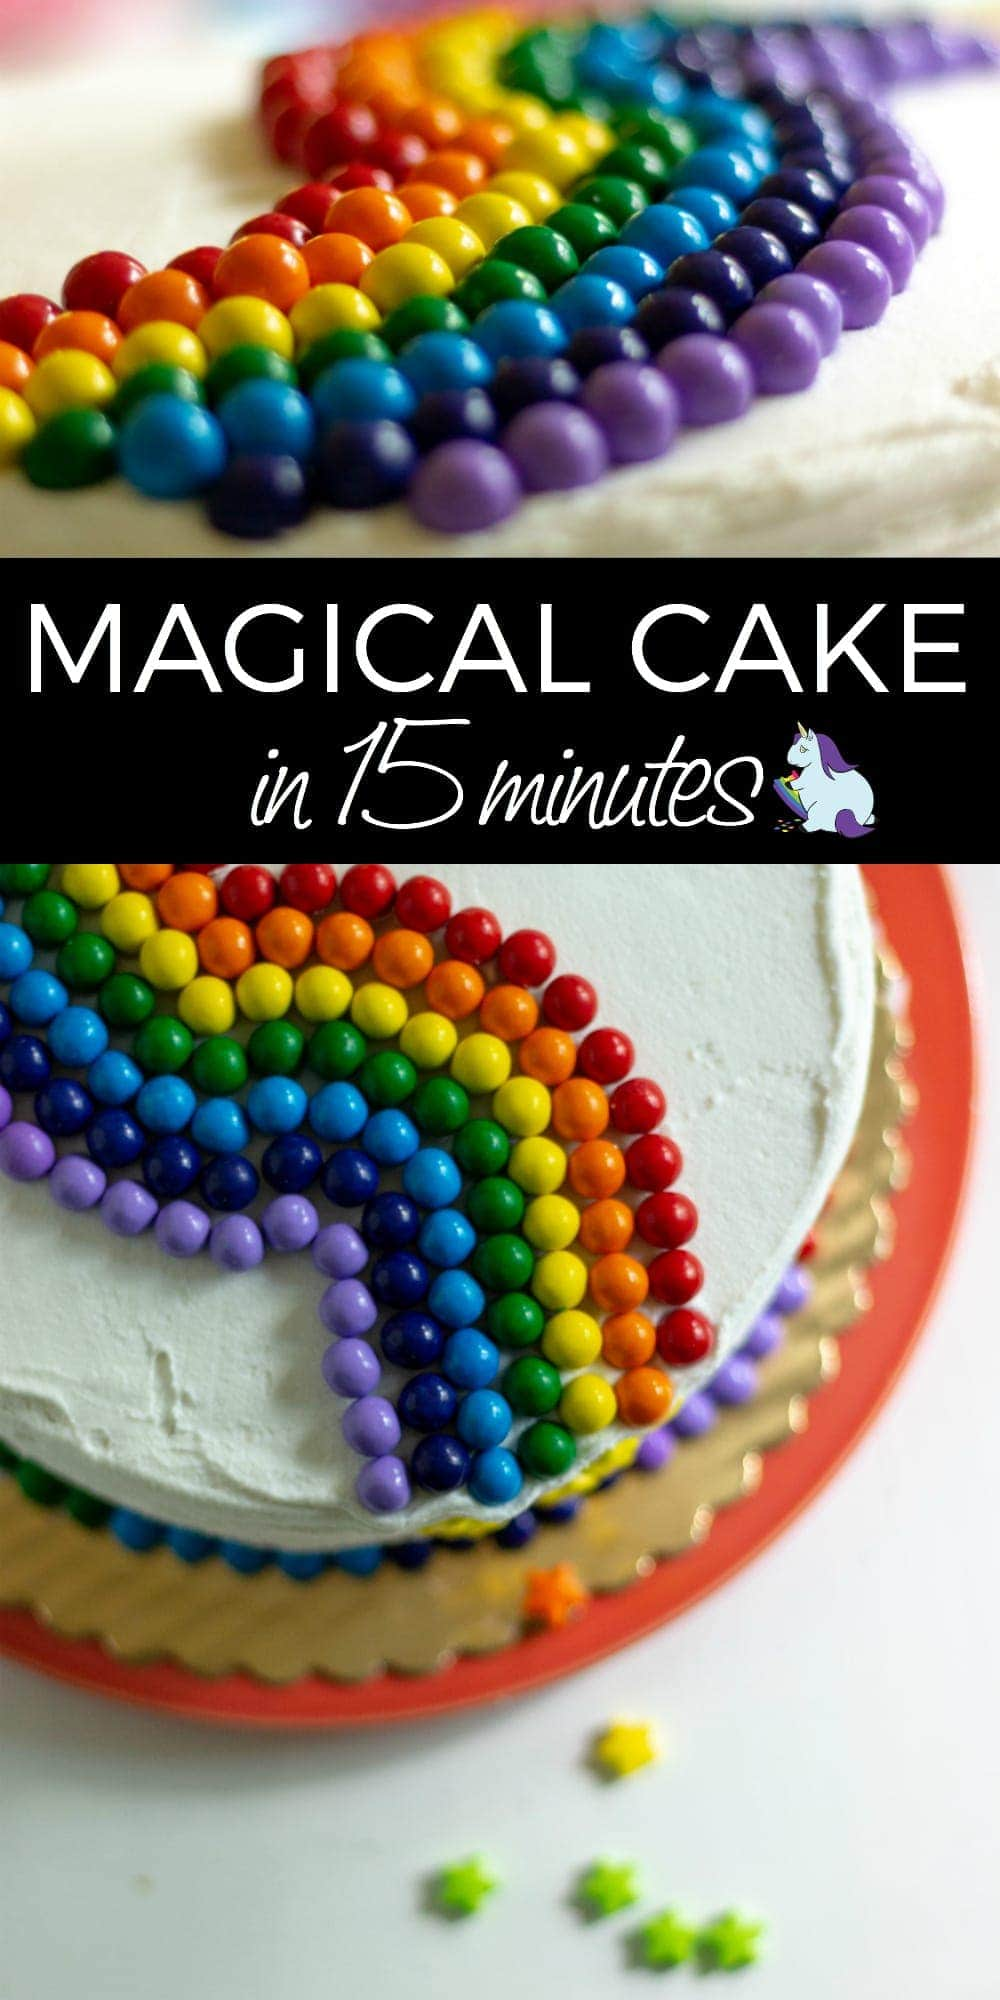 Easy Cake Decorating to Make Any Occassion Magical #cake #rainbow #unicorn #candy #cakedecorating #magical #colorful